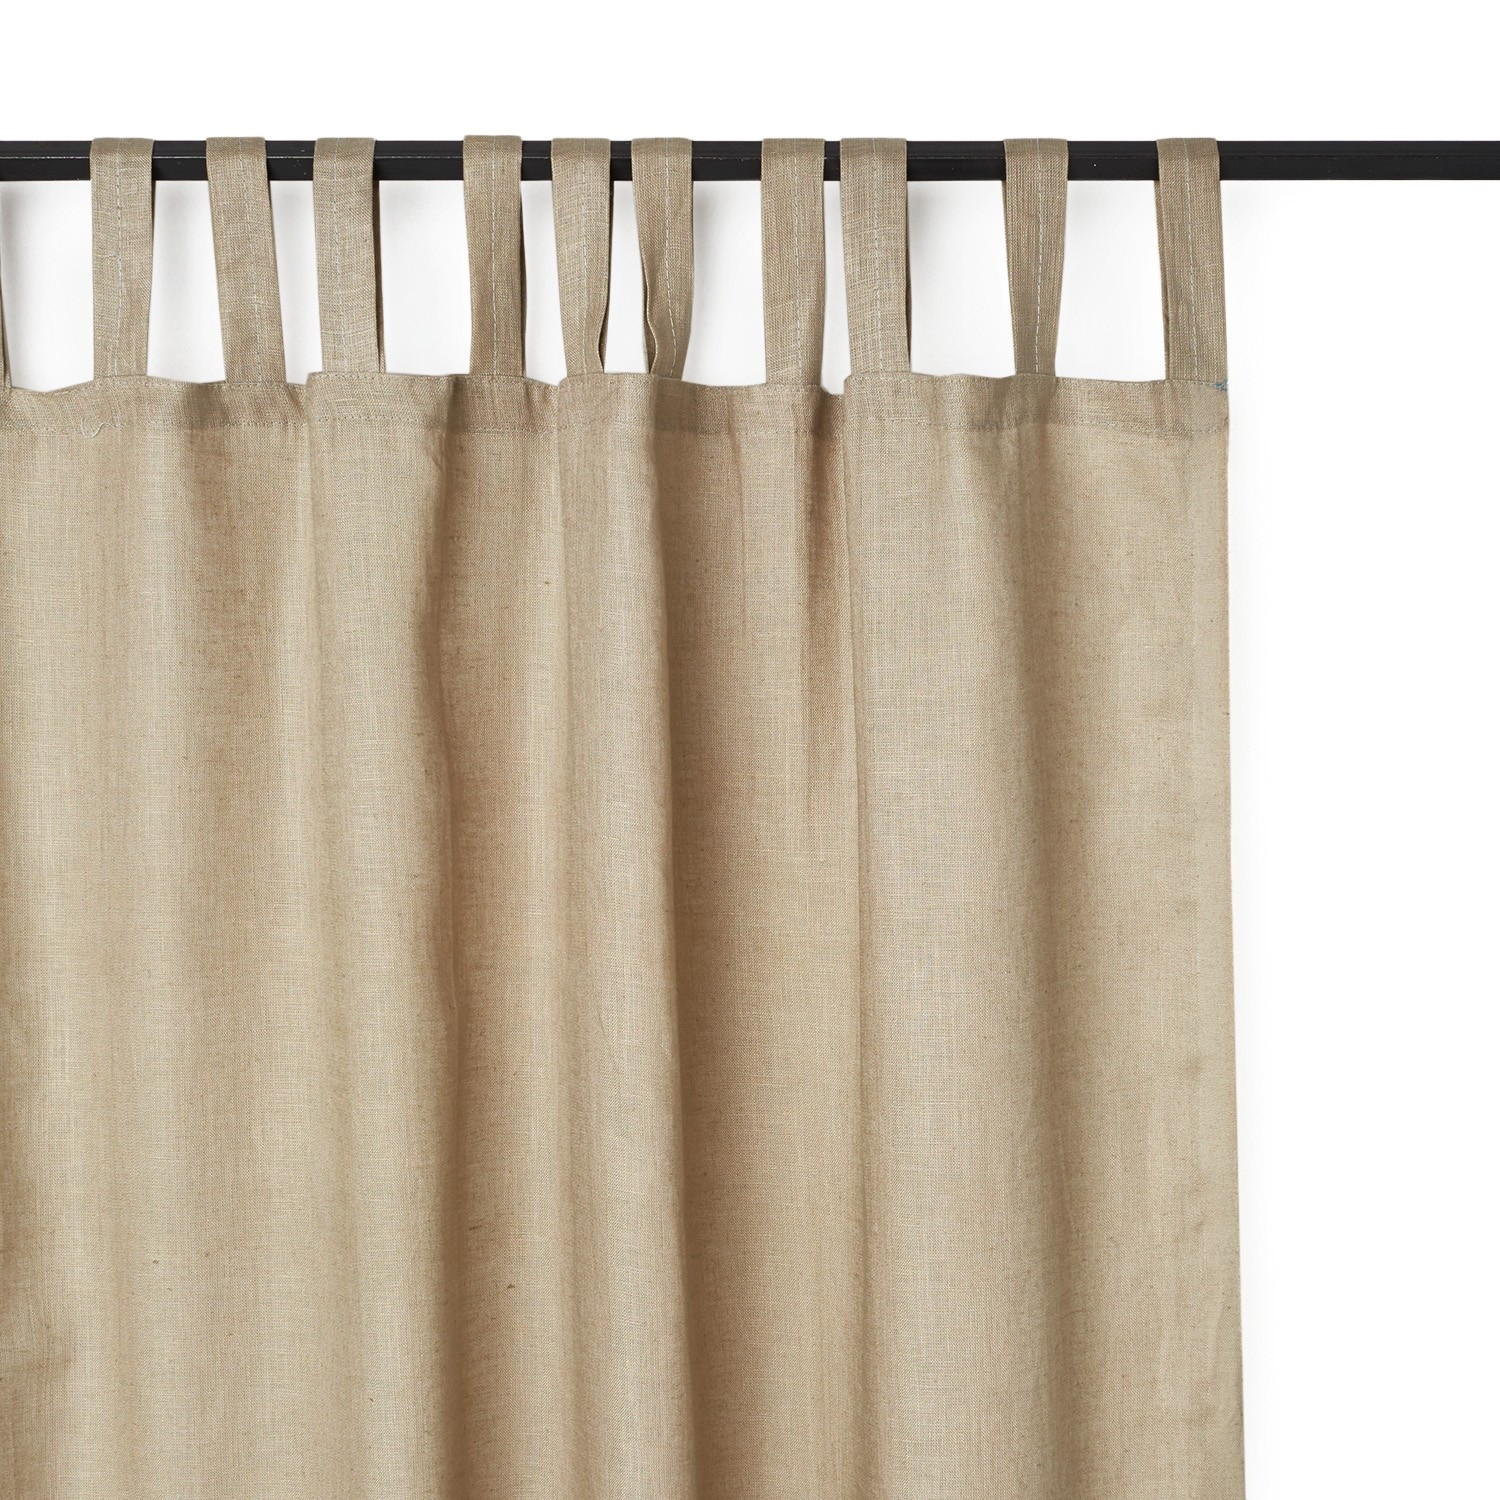 Curtain Panels Window Treatments At Abc Home In Extra Long Linen Curtains (Image 3 of 15)